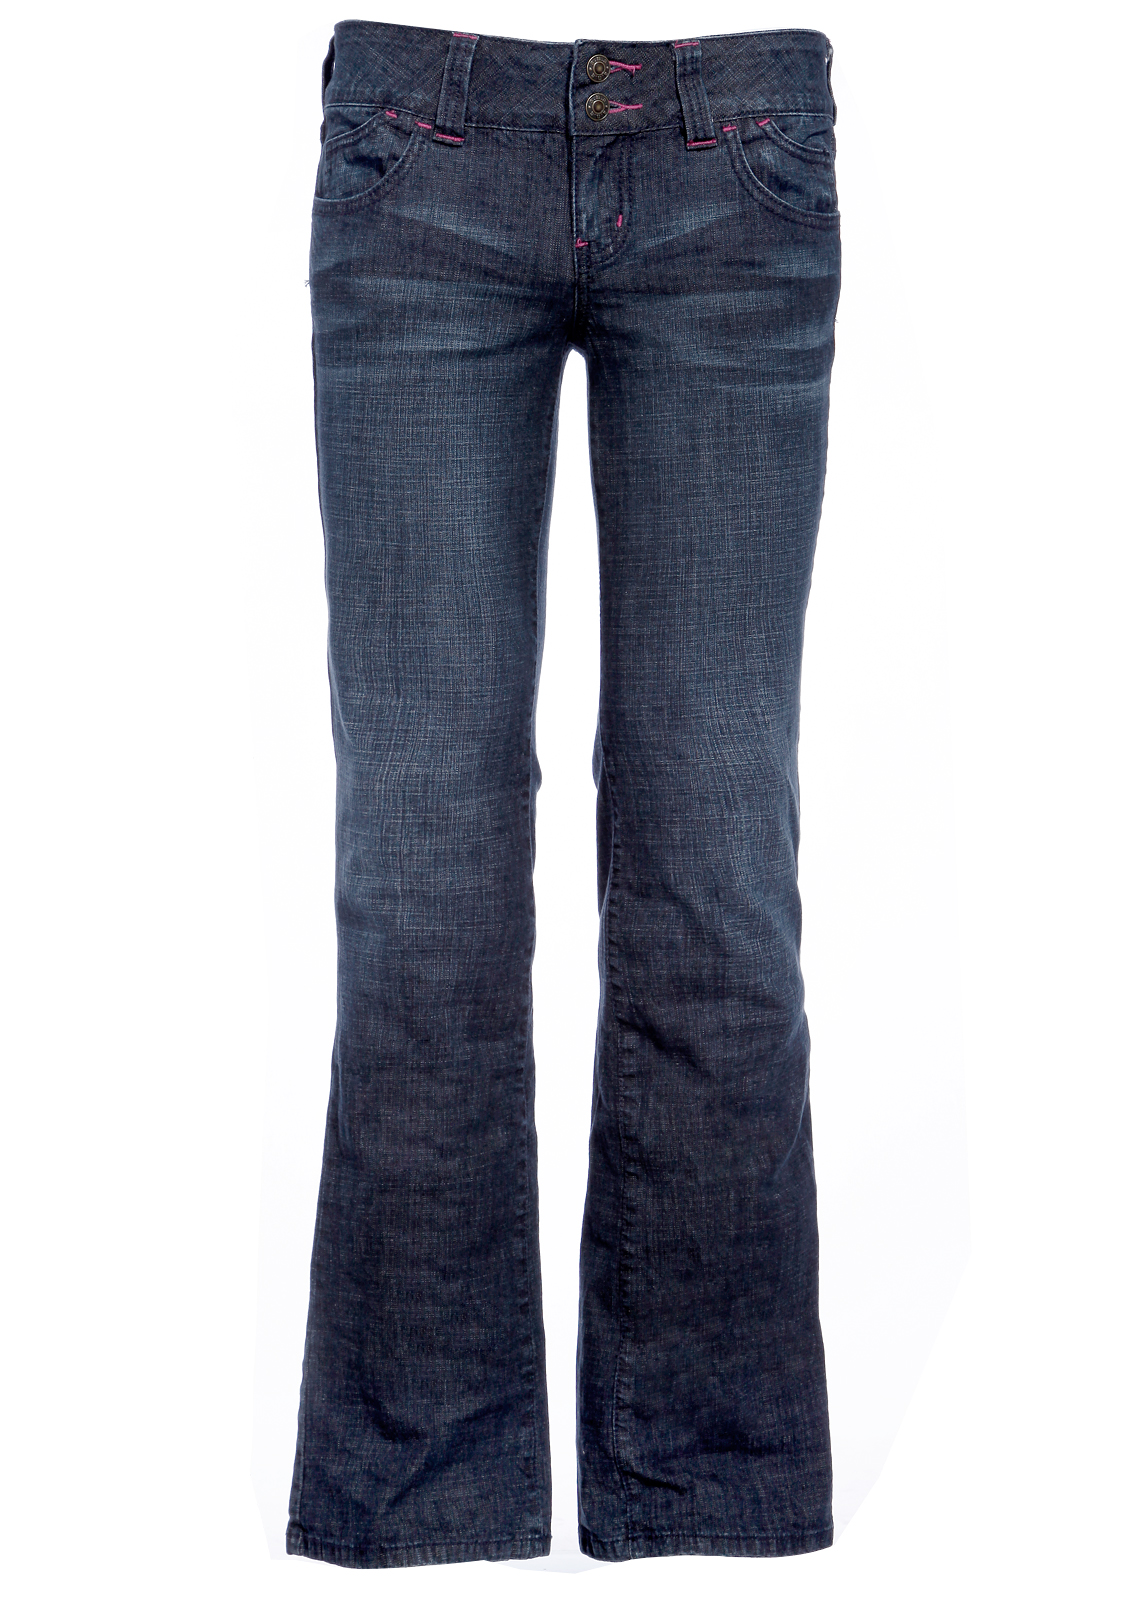 Explore Lee's collection of women's jeans and denim. From bootcut jeans to denim leggings, visit online for women's jeans that offer the best in style and fit. Jeans for Women Showing: Items Sort: Platinum Defy Stretch Skinny Jean. $ Compare Quick Shop. Vintage Modern Pinup Mom Jean .